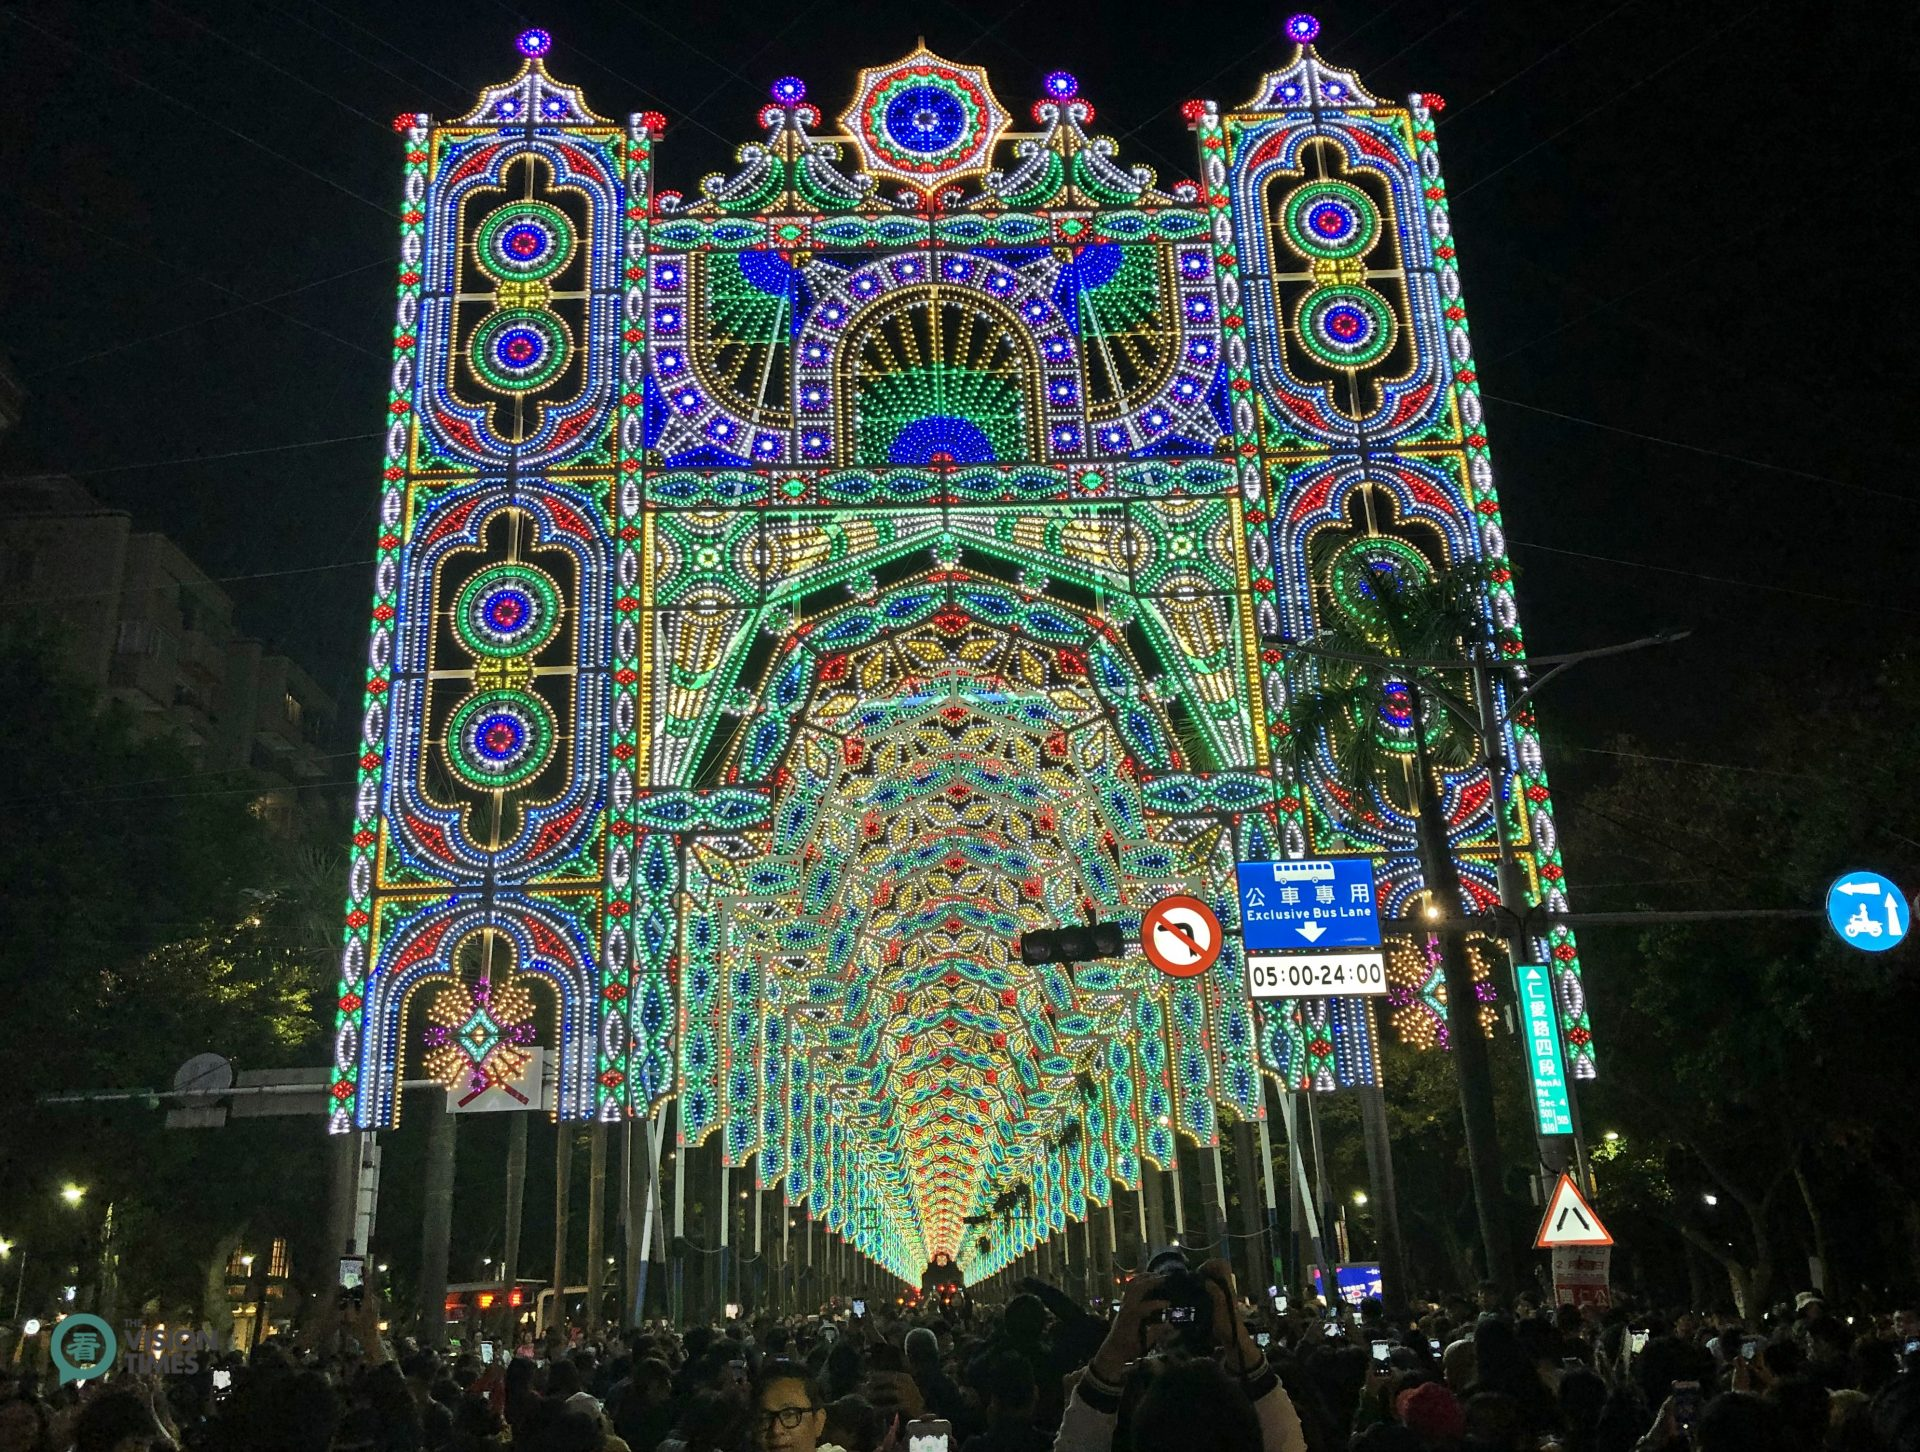 The 2019 Taipei Luminarie Show has brought excitement and joy to the public during the Lunar New Year holiday. (Image: Billy Shyu / Vision Times)